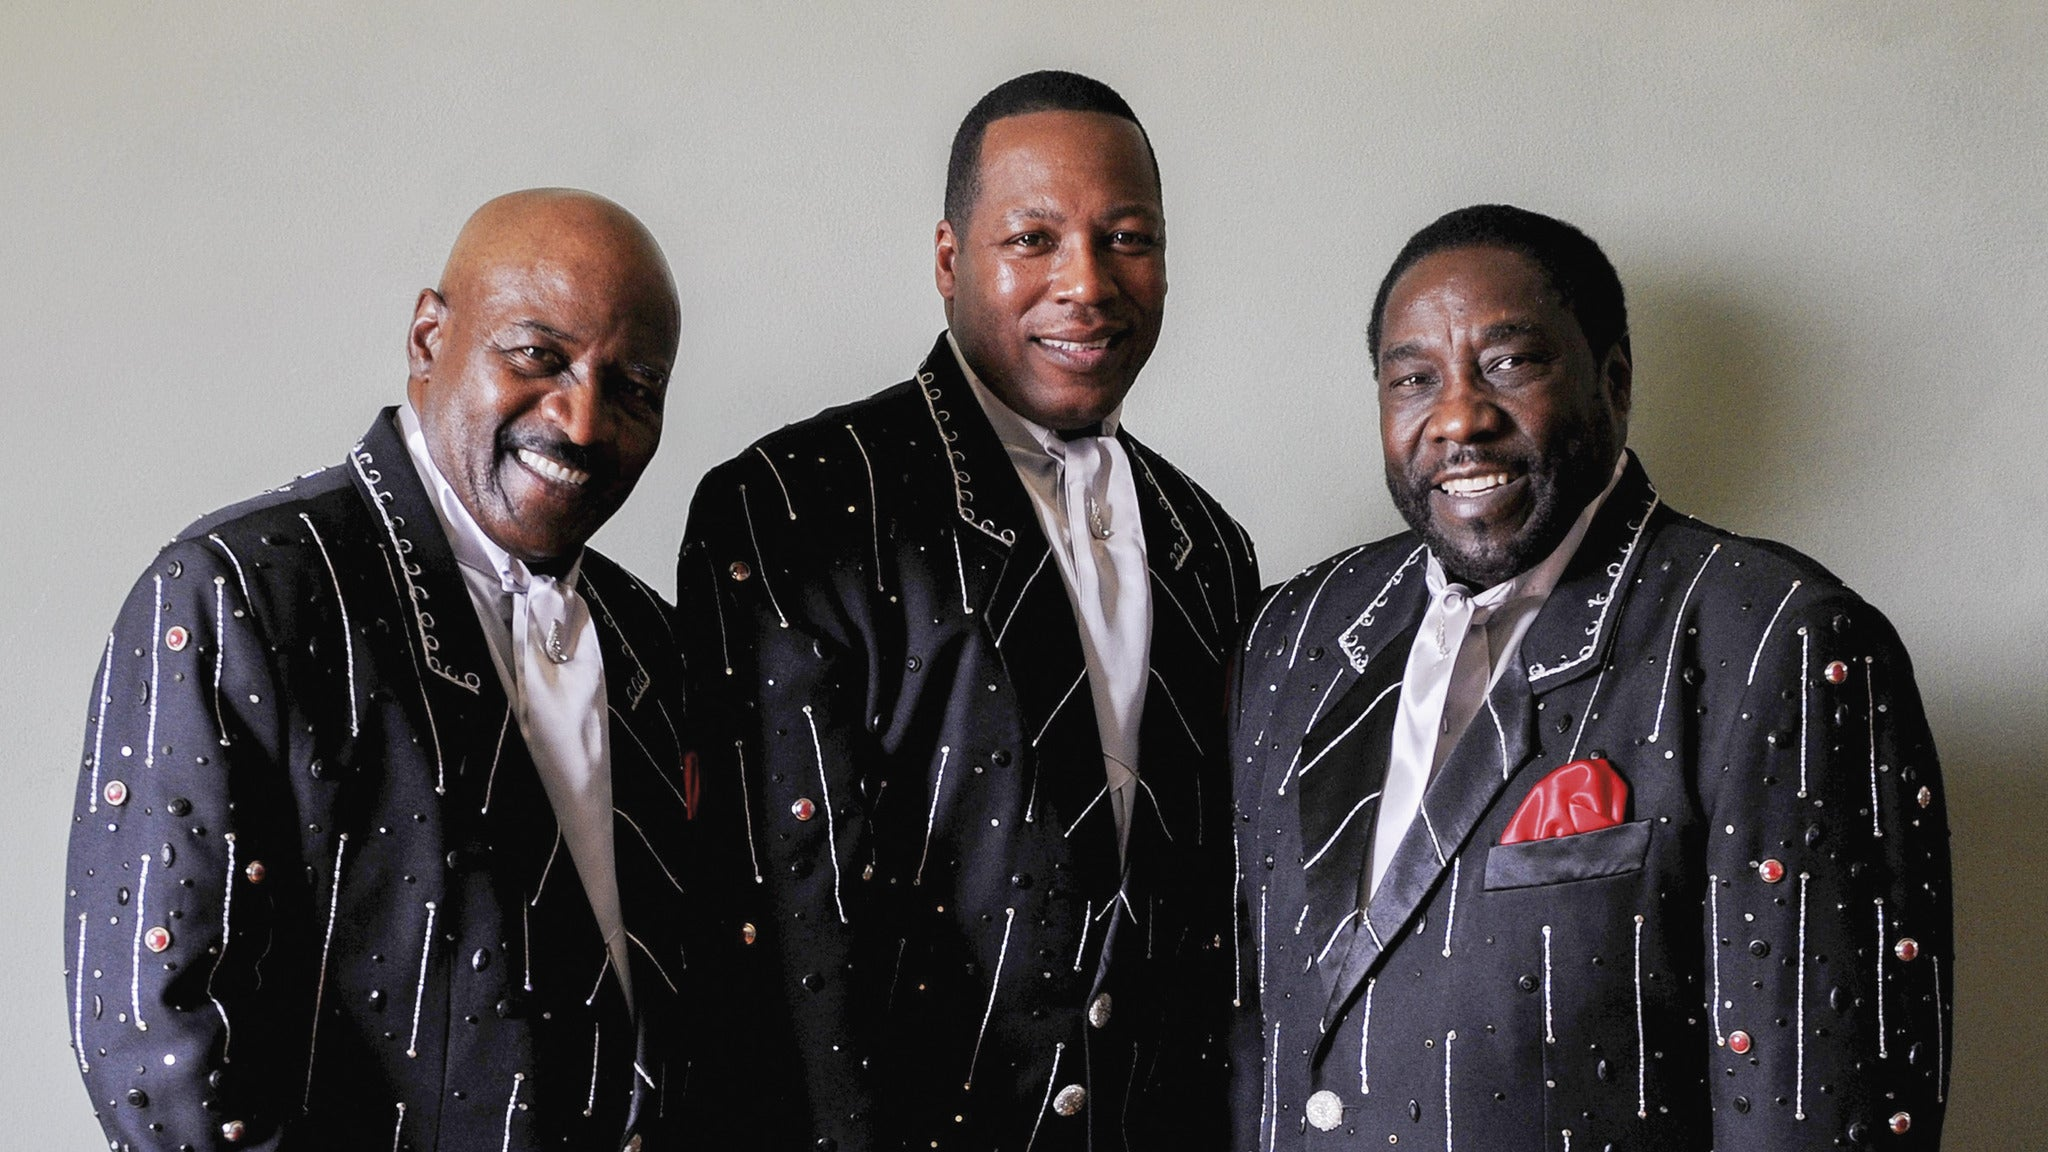 An Evening With The O'Jays at Genesee Theatre